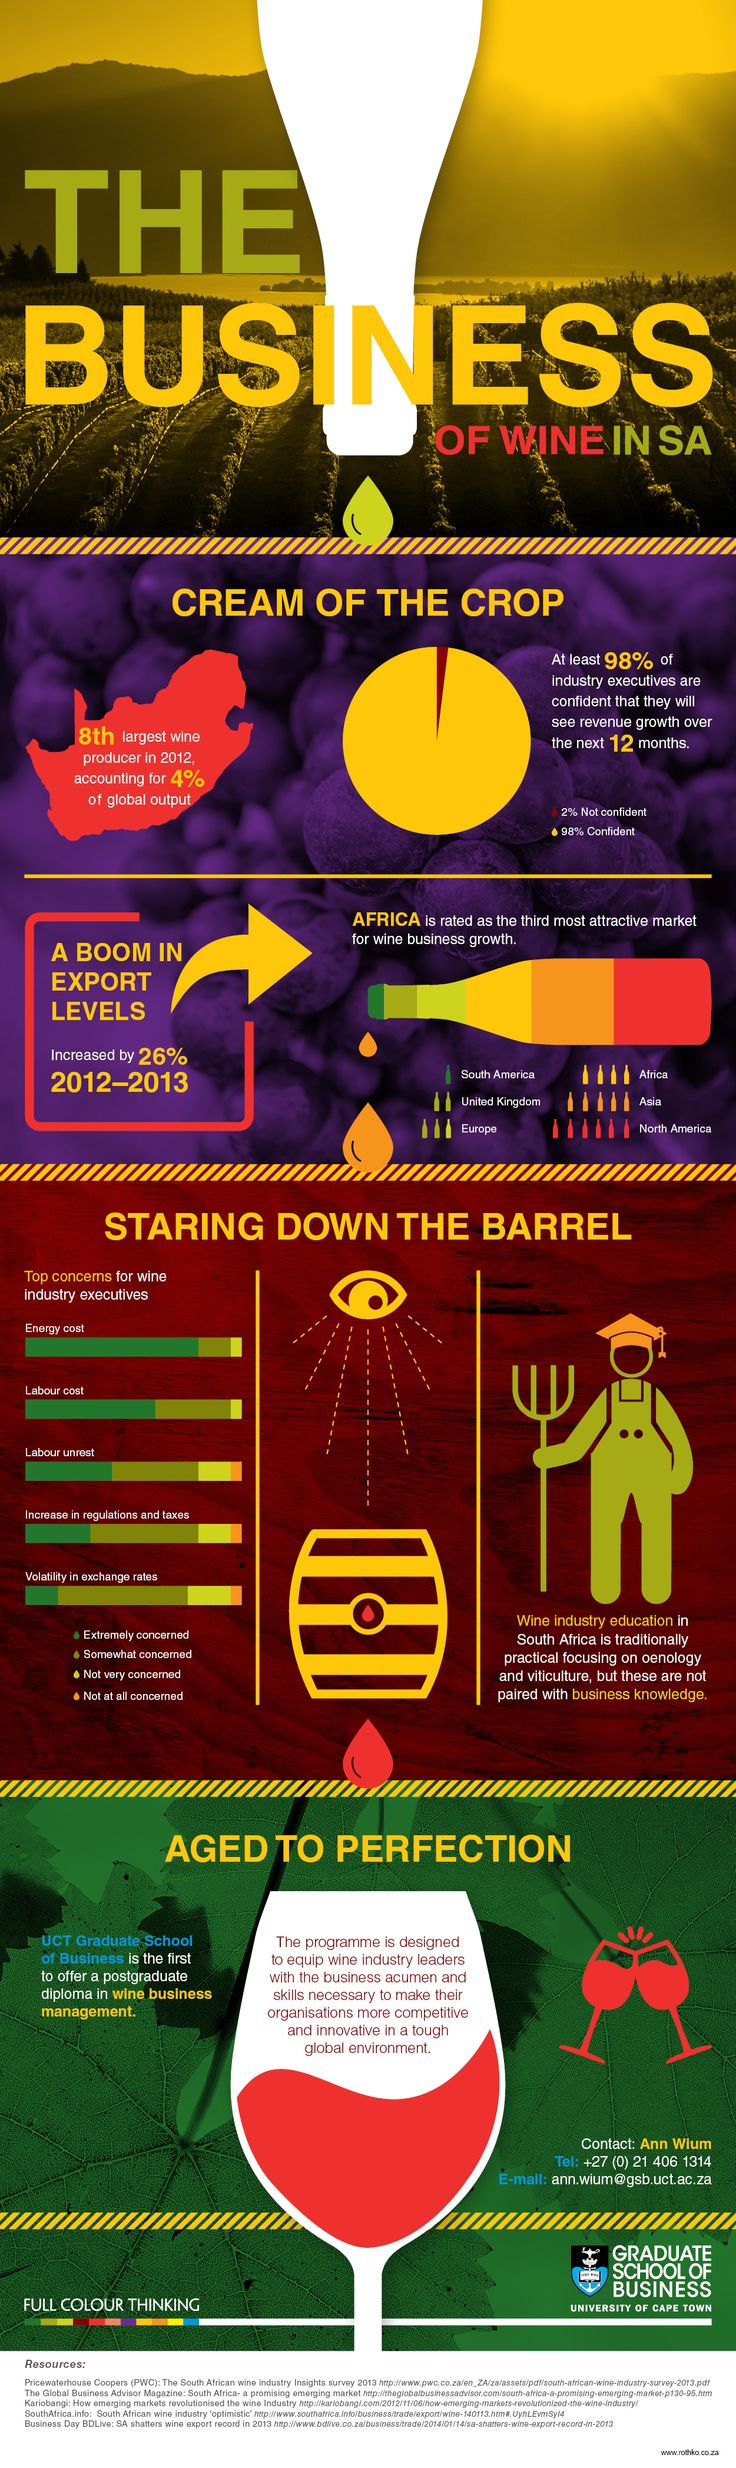 'The Business of Wine' infographic highlights the University of Cape Town Graduate School of Business Wine Business Management course.